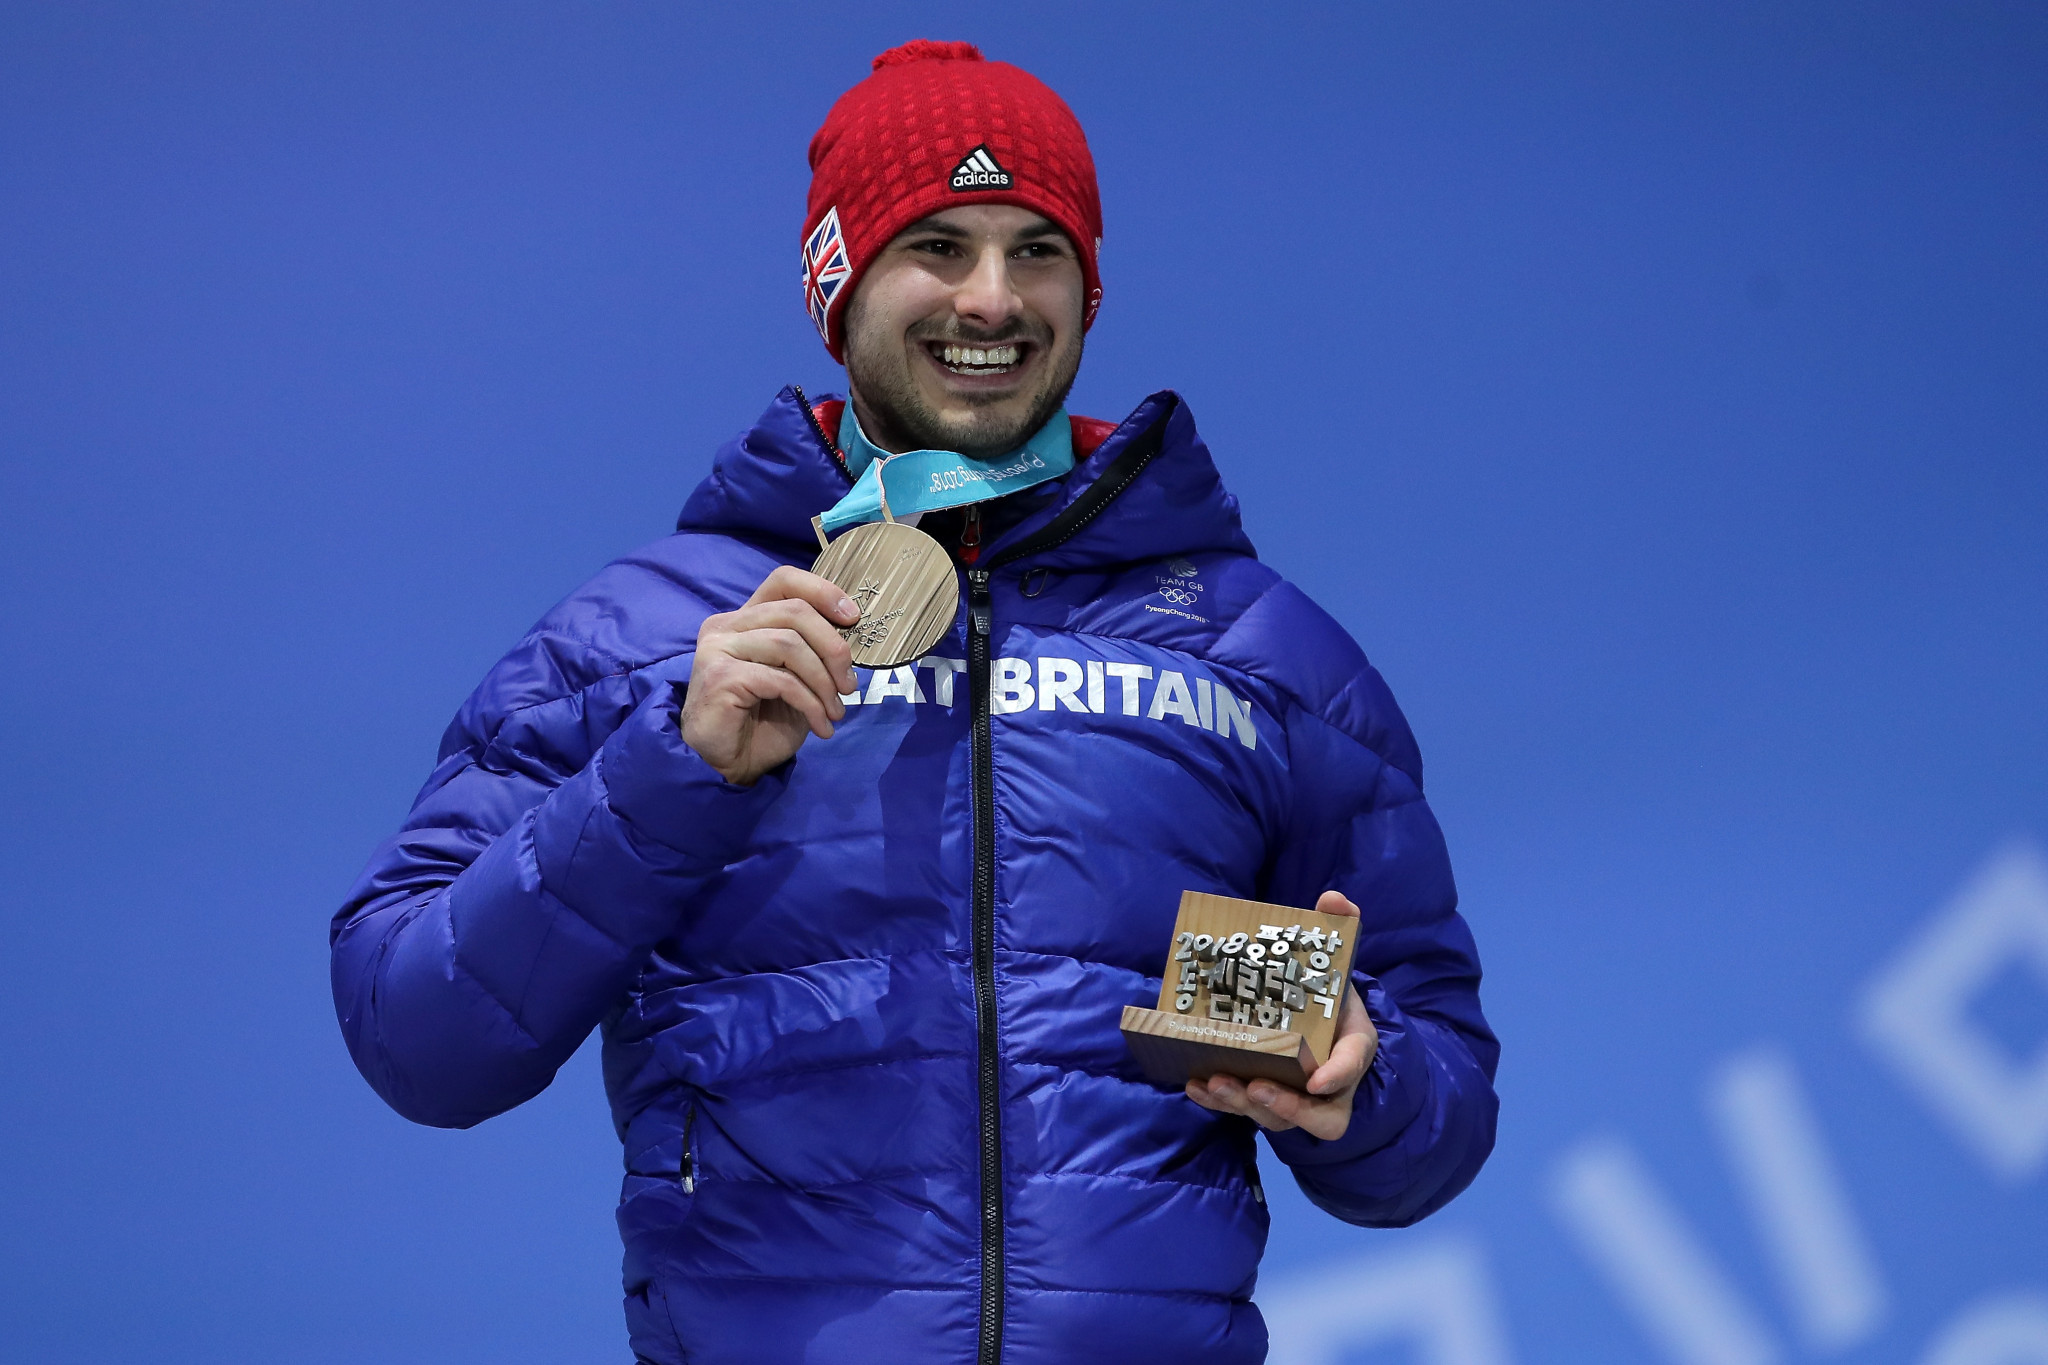 Dom Parsons' bronze medal at Pyeongchang 2018 was Britain's first won by a male in the sport for 70 years ©Getty Images